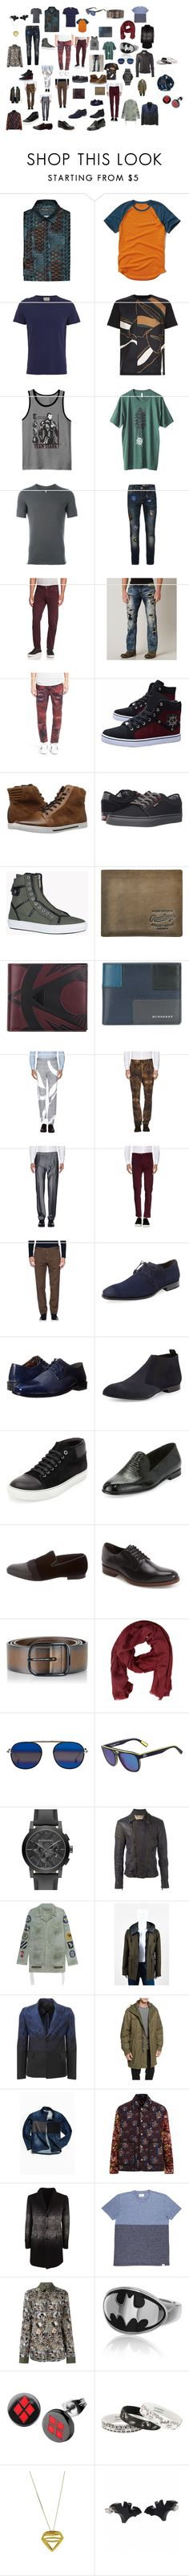 """""""y30"""" by dieselformas ❤ liked on Polyvore featuring Salvatore Ferragamo, Hollister Co., Oliver Spencer, Wooyoungmi, JEM, Kavu, Label Under Construction, Topman, rag & bone and Affliction"""